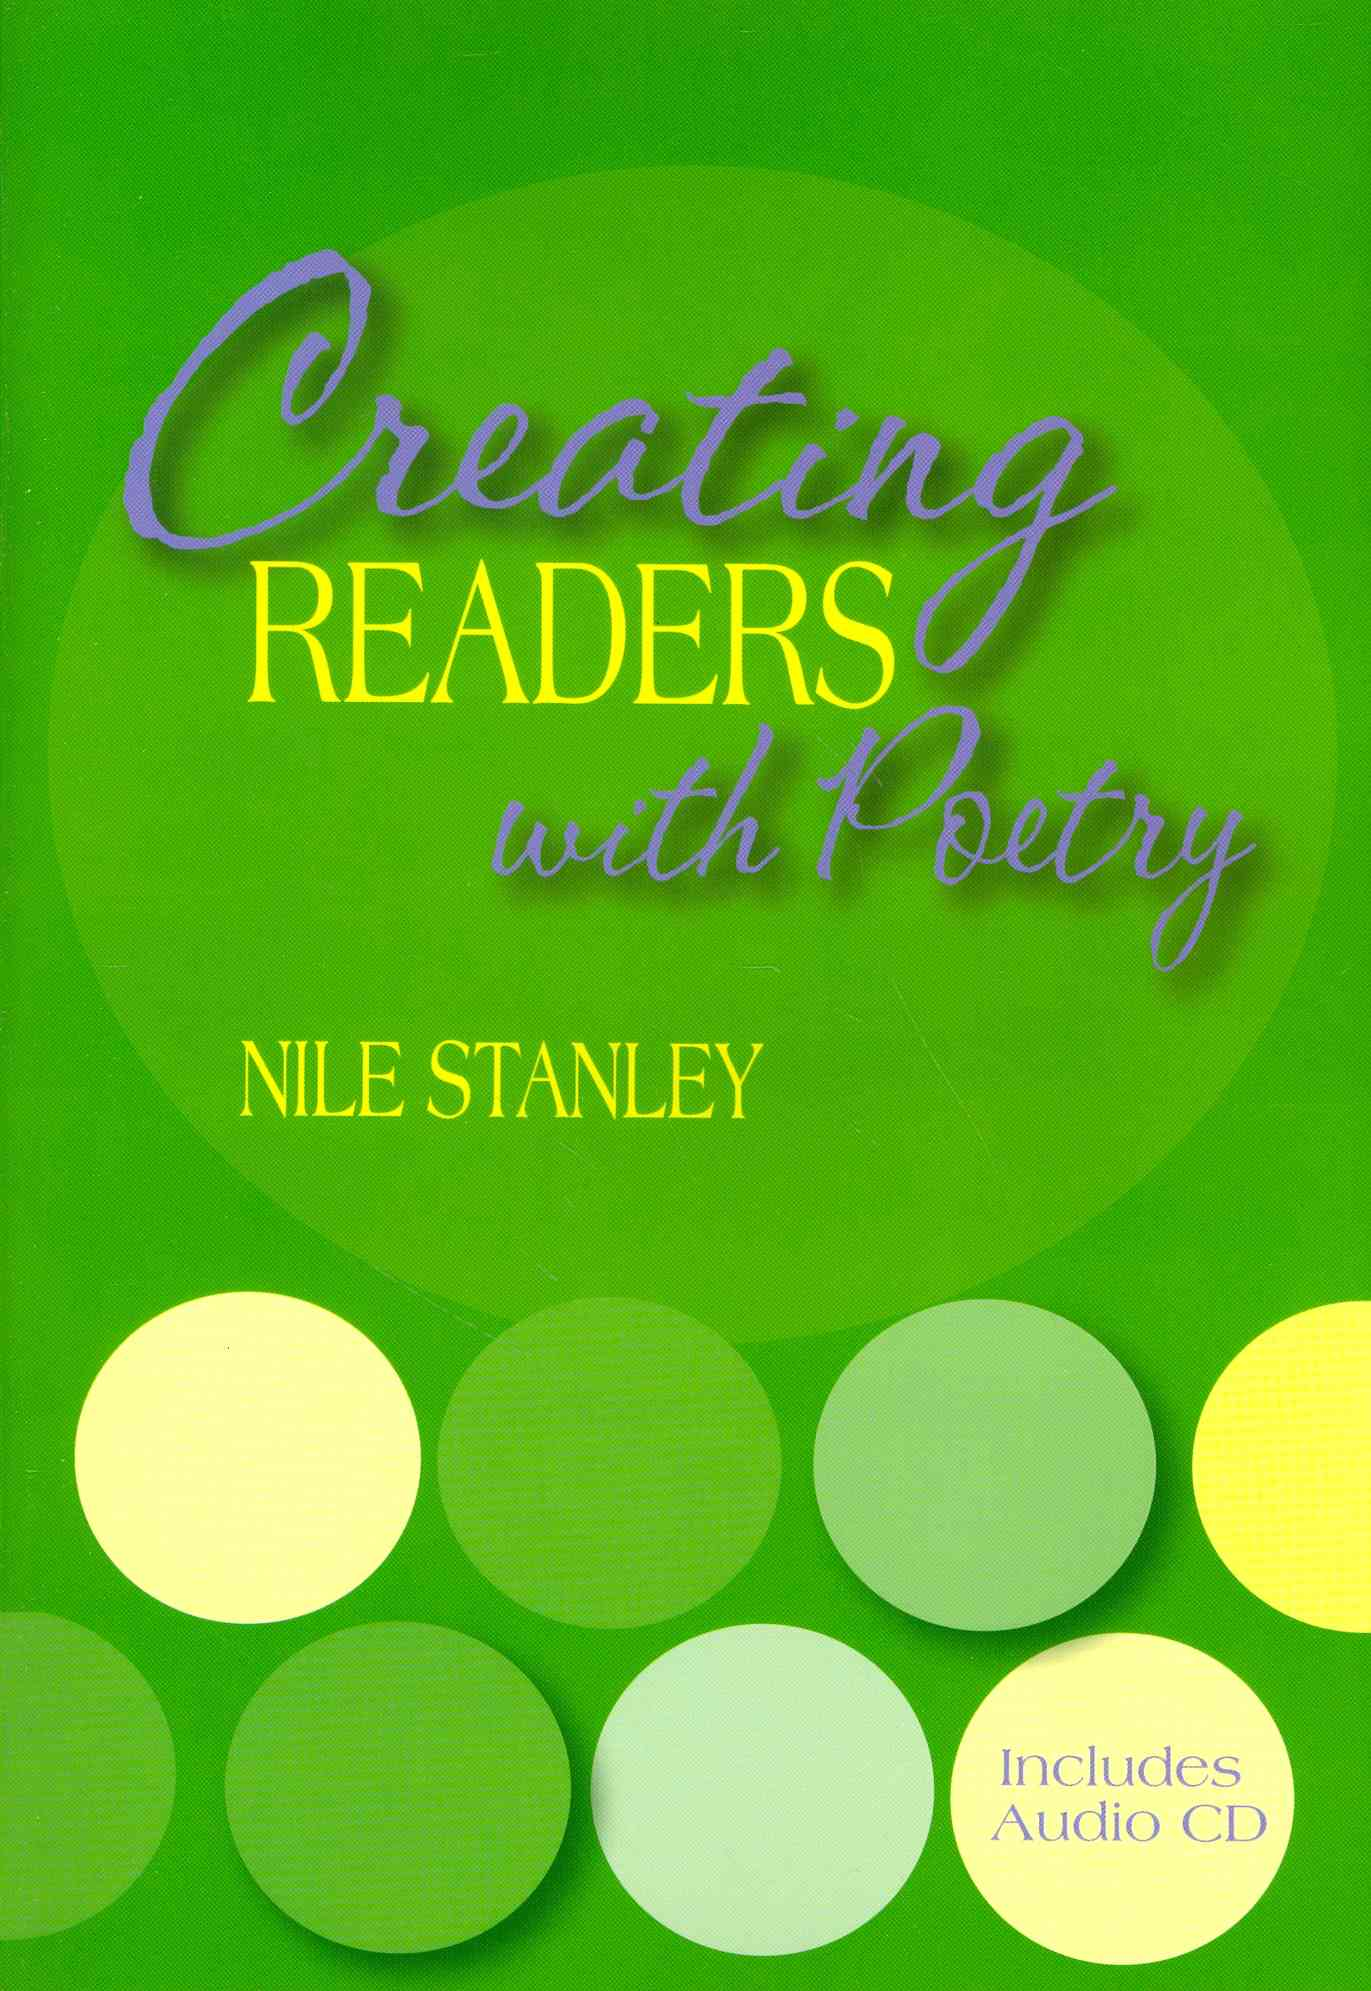 Creating Readers with Poetry with CD (Audio)